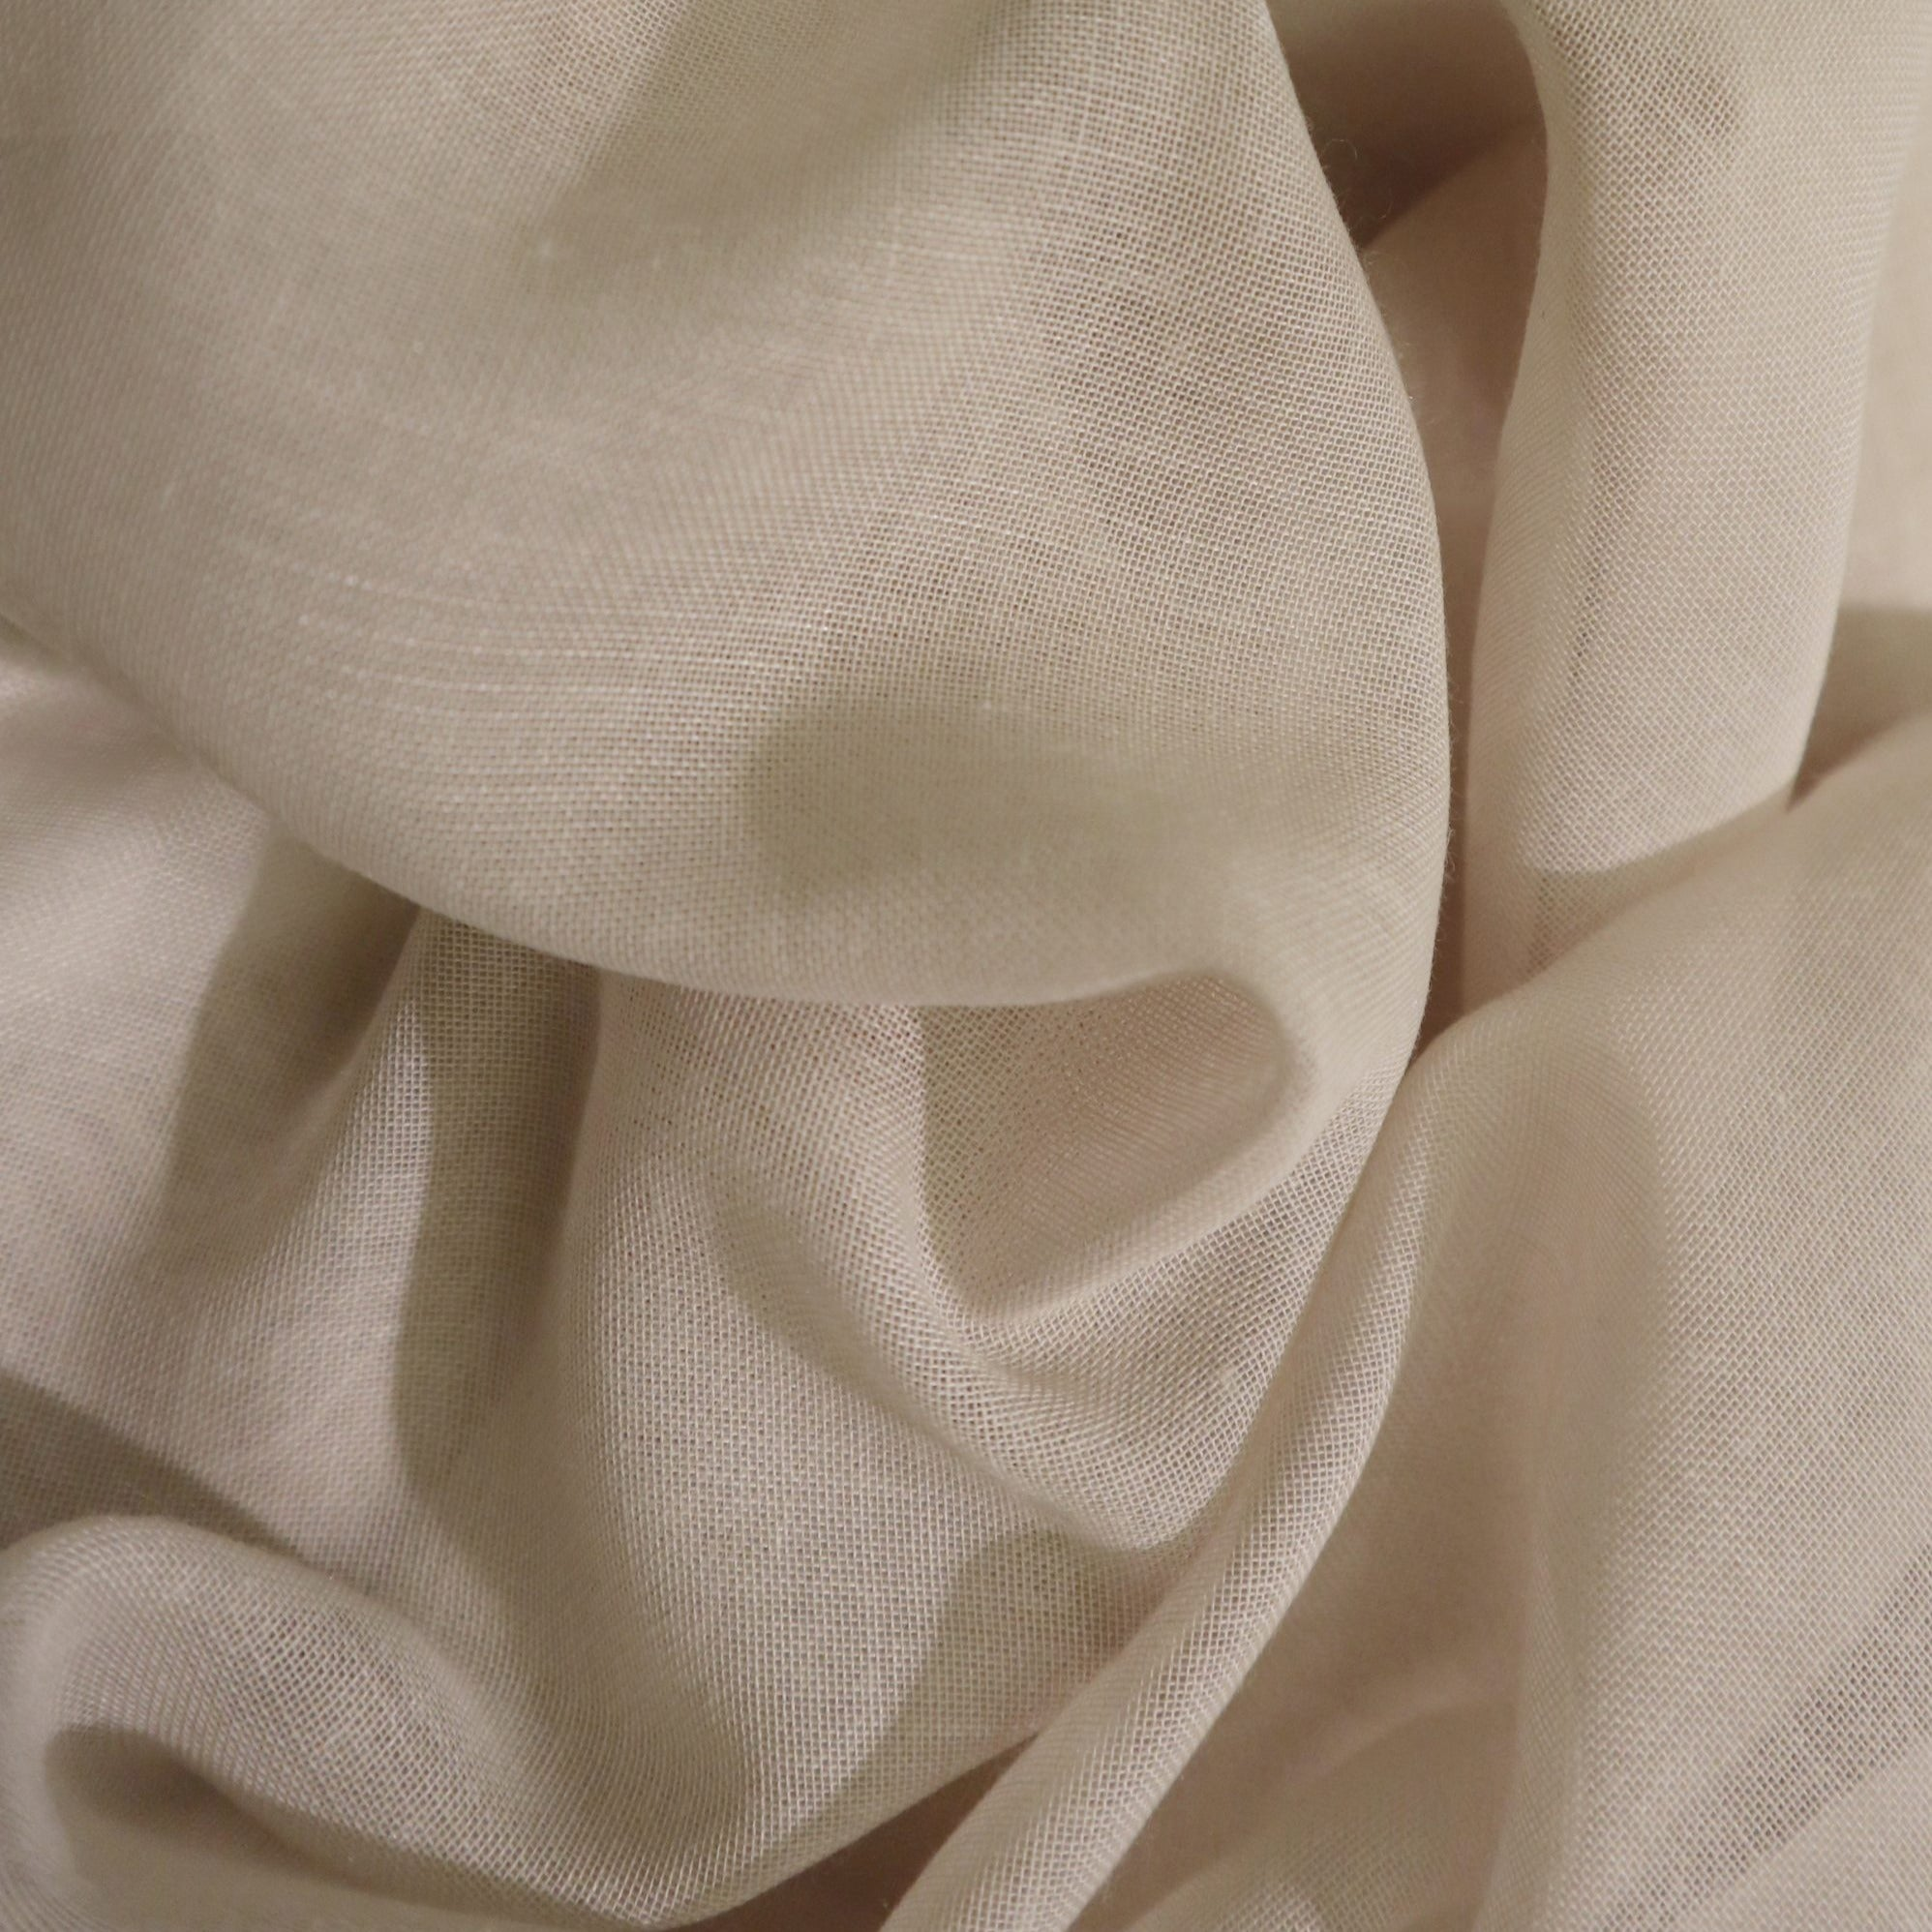 Curtain sheer voile fabric sample – Sand